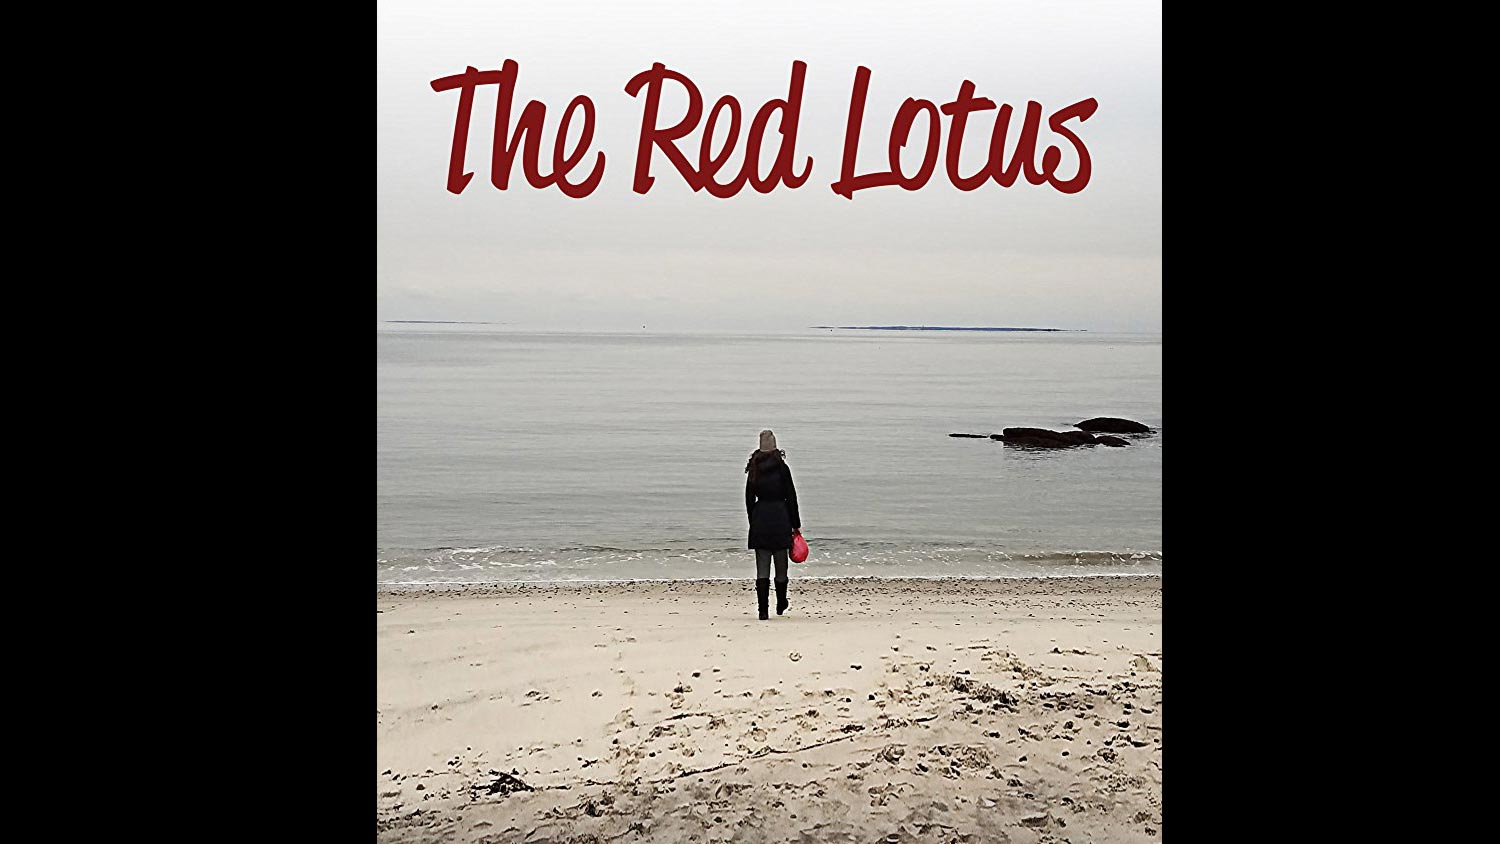 The Red Lotus Review – An Apt Subject, In A Different Country - OC Movie Reviews - Movie Reviews, Movie News, Documentary Reviews, Short Films, Short Film Reviews, Trailers, Movie Trailers, Interviews, film reviews, film news, hollywood, indie films, documentaries